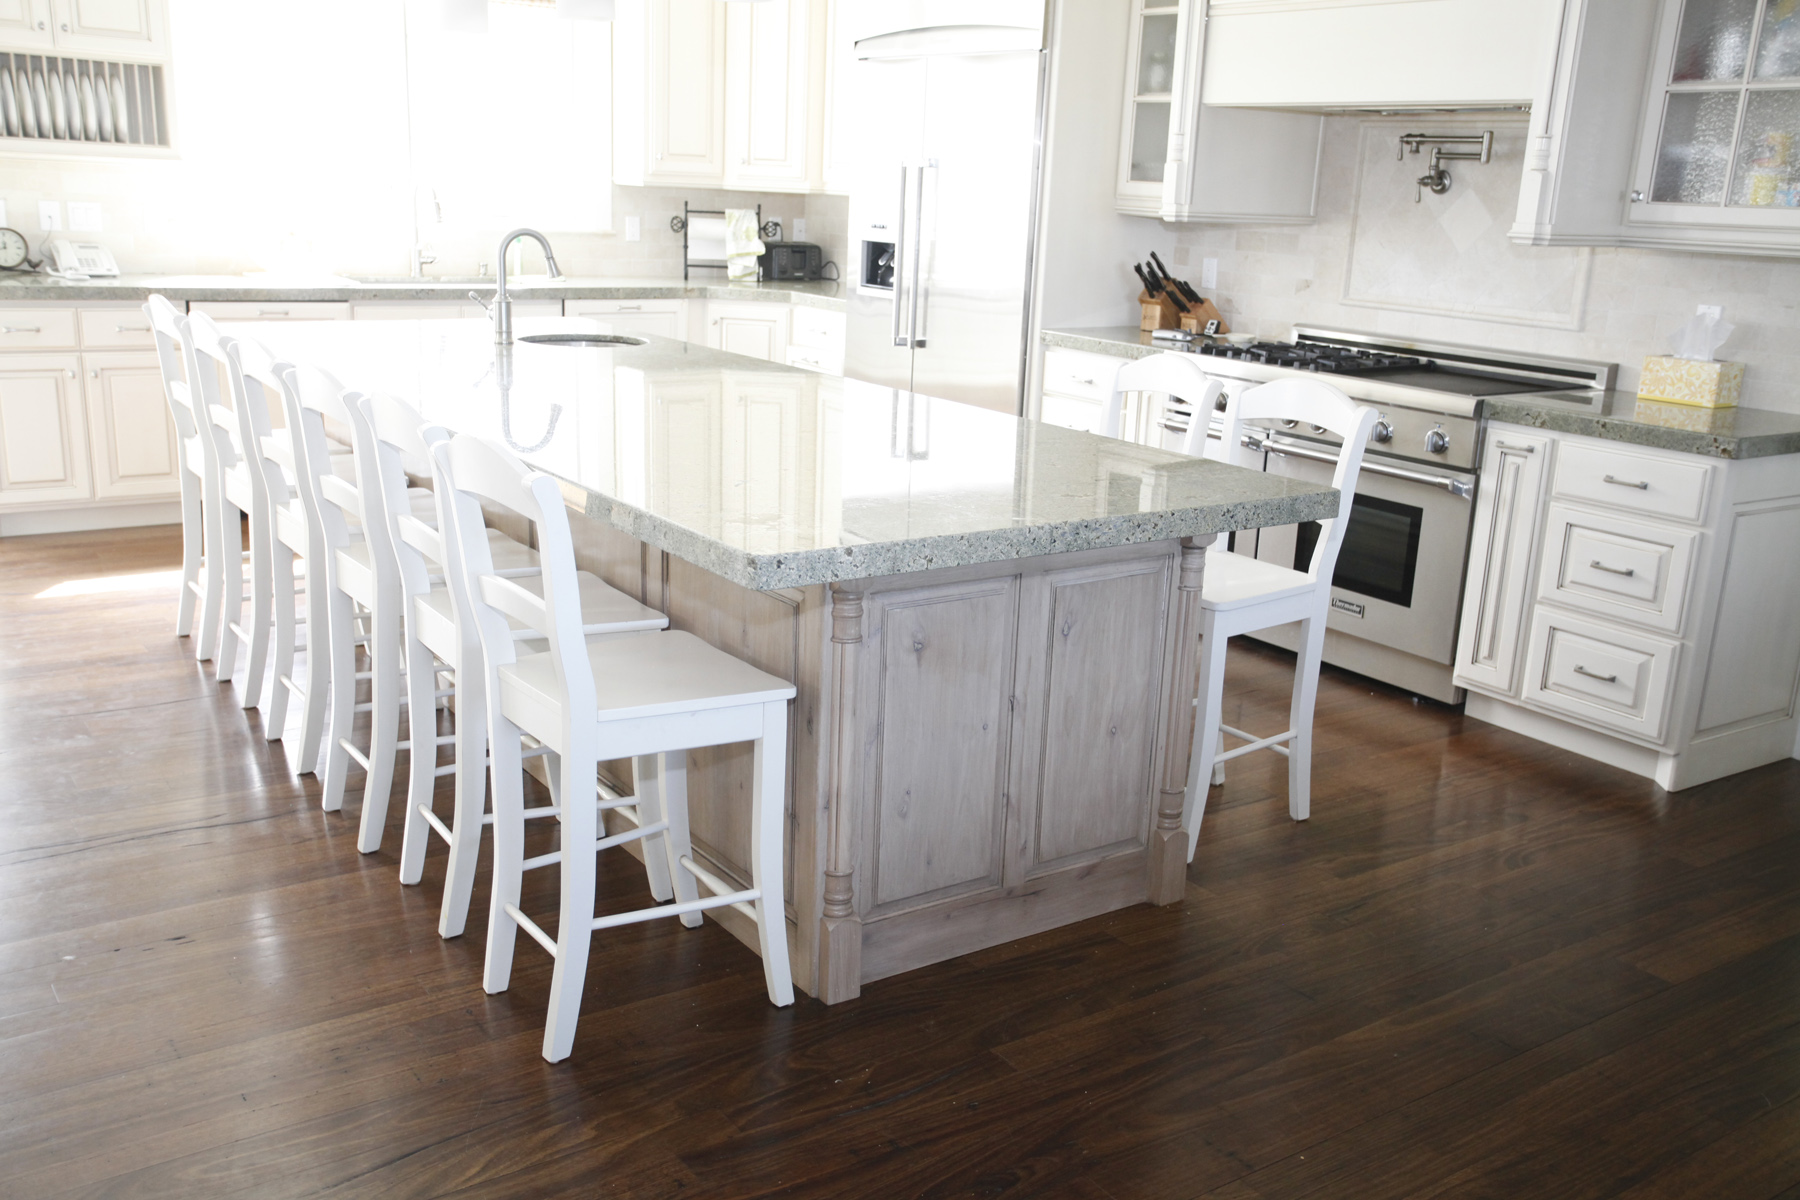 hardwood floor kitchens hardwood floors in kitchen Hardwood floor kitchen